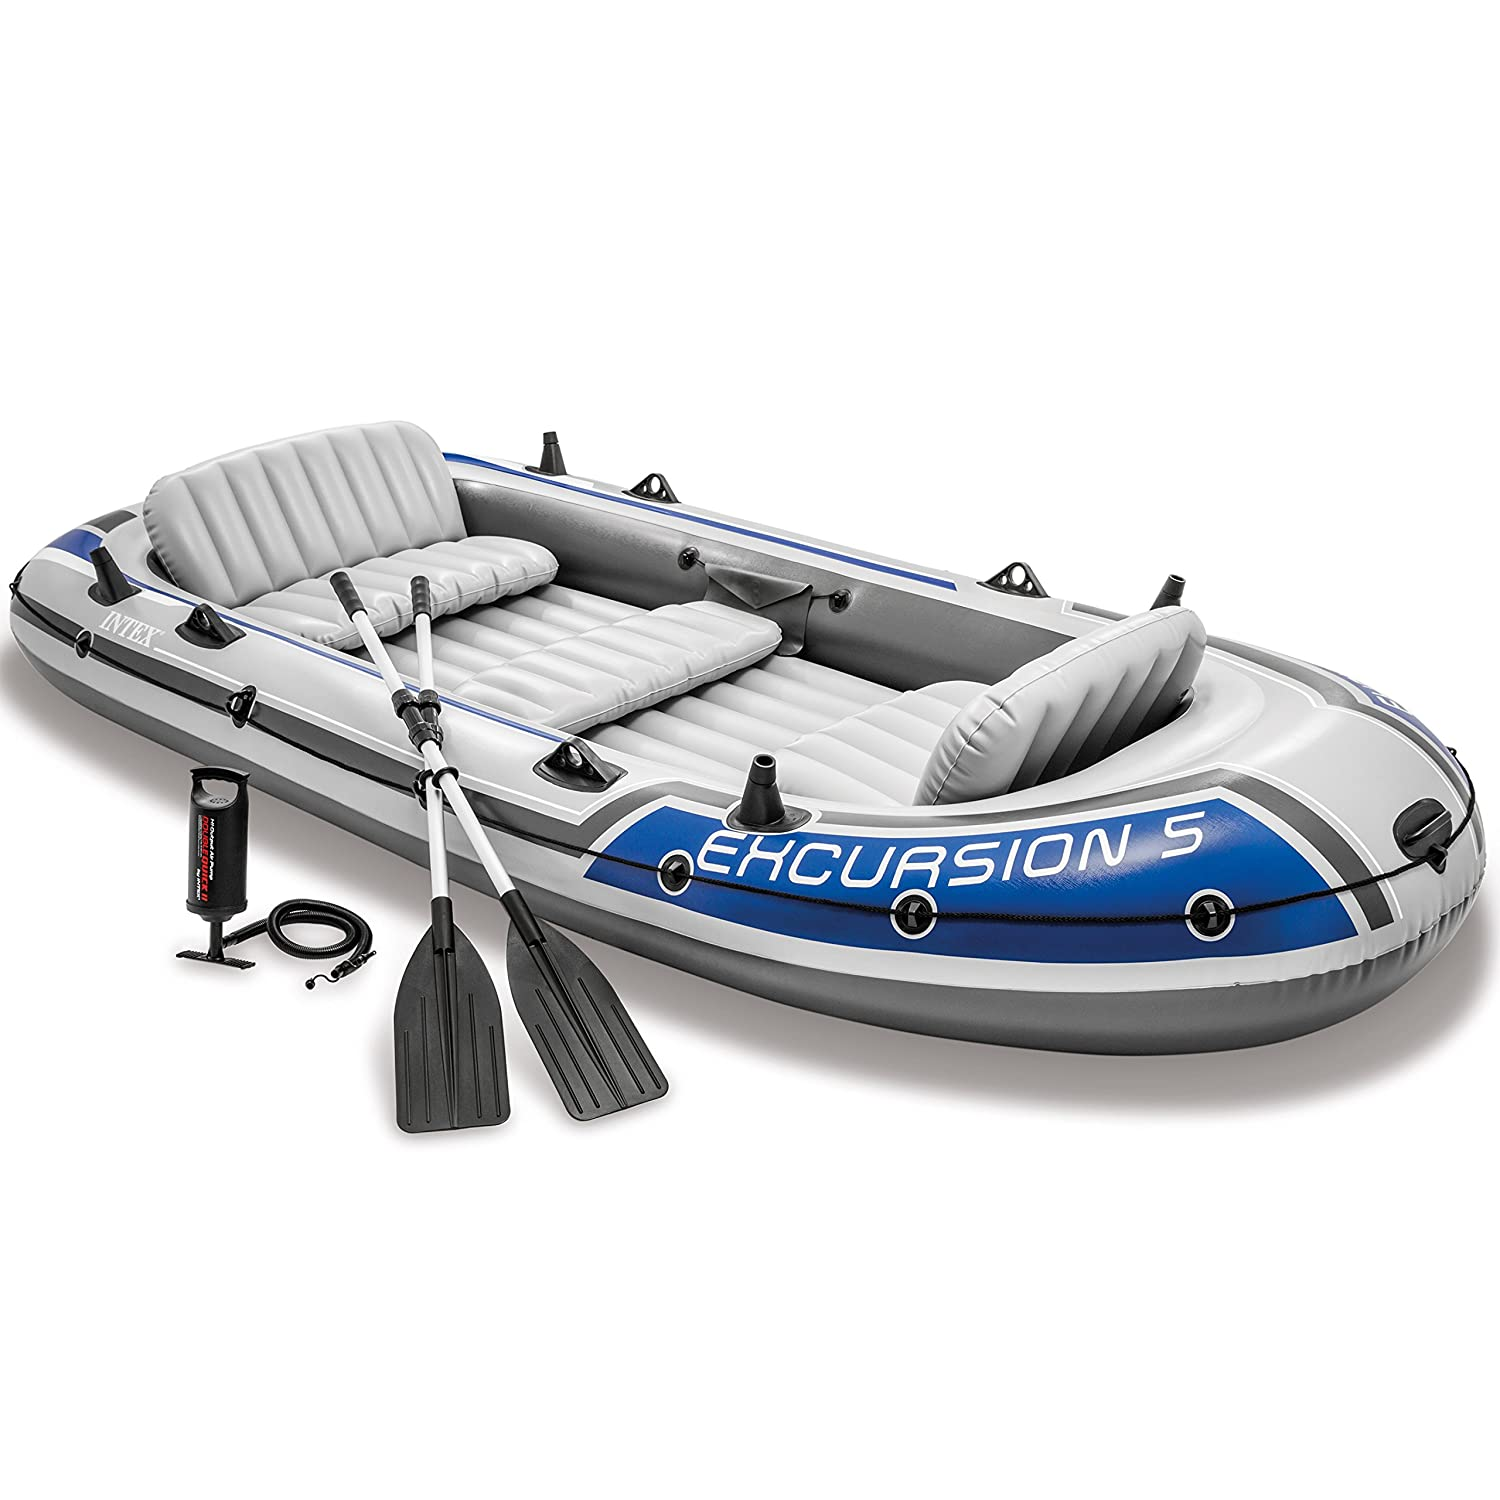 The 5-Person Inflatable Intex Excursion 5 Fishing Boat Set